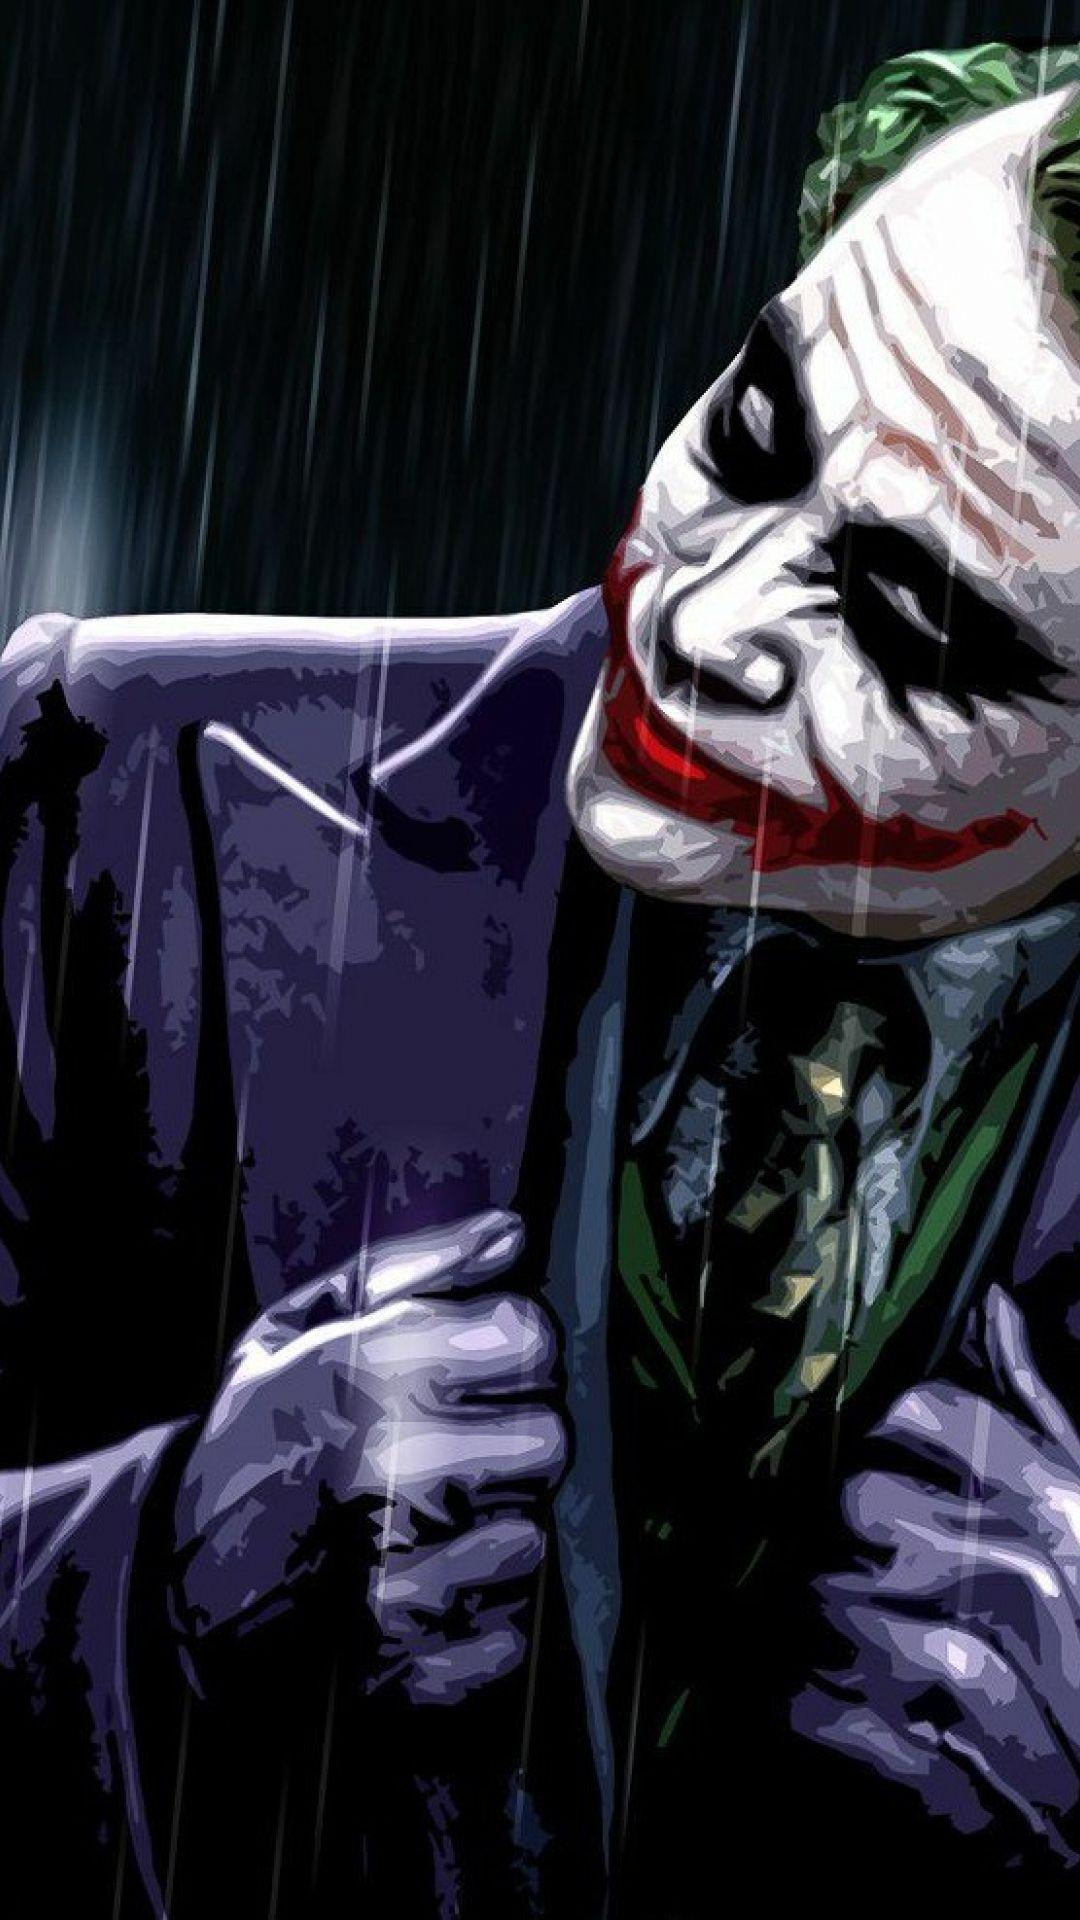 joker batman hd wallpapers android phone 4k background hupages iphone wallpapercave mobiles resolutions